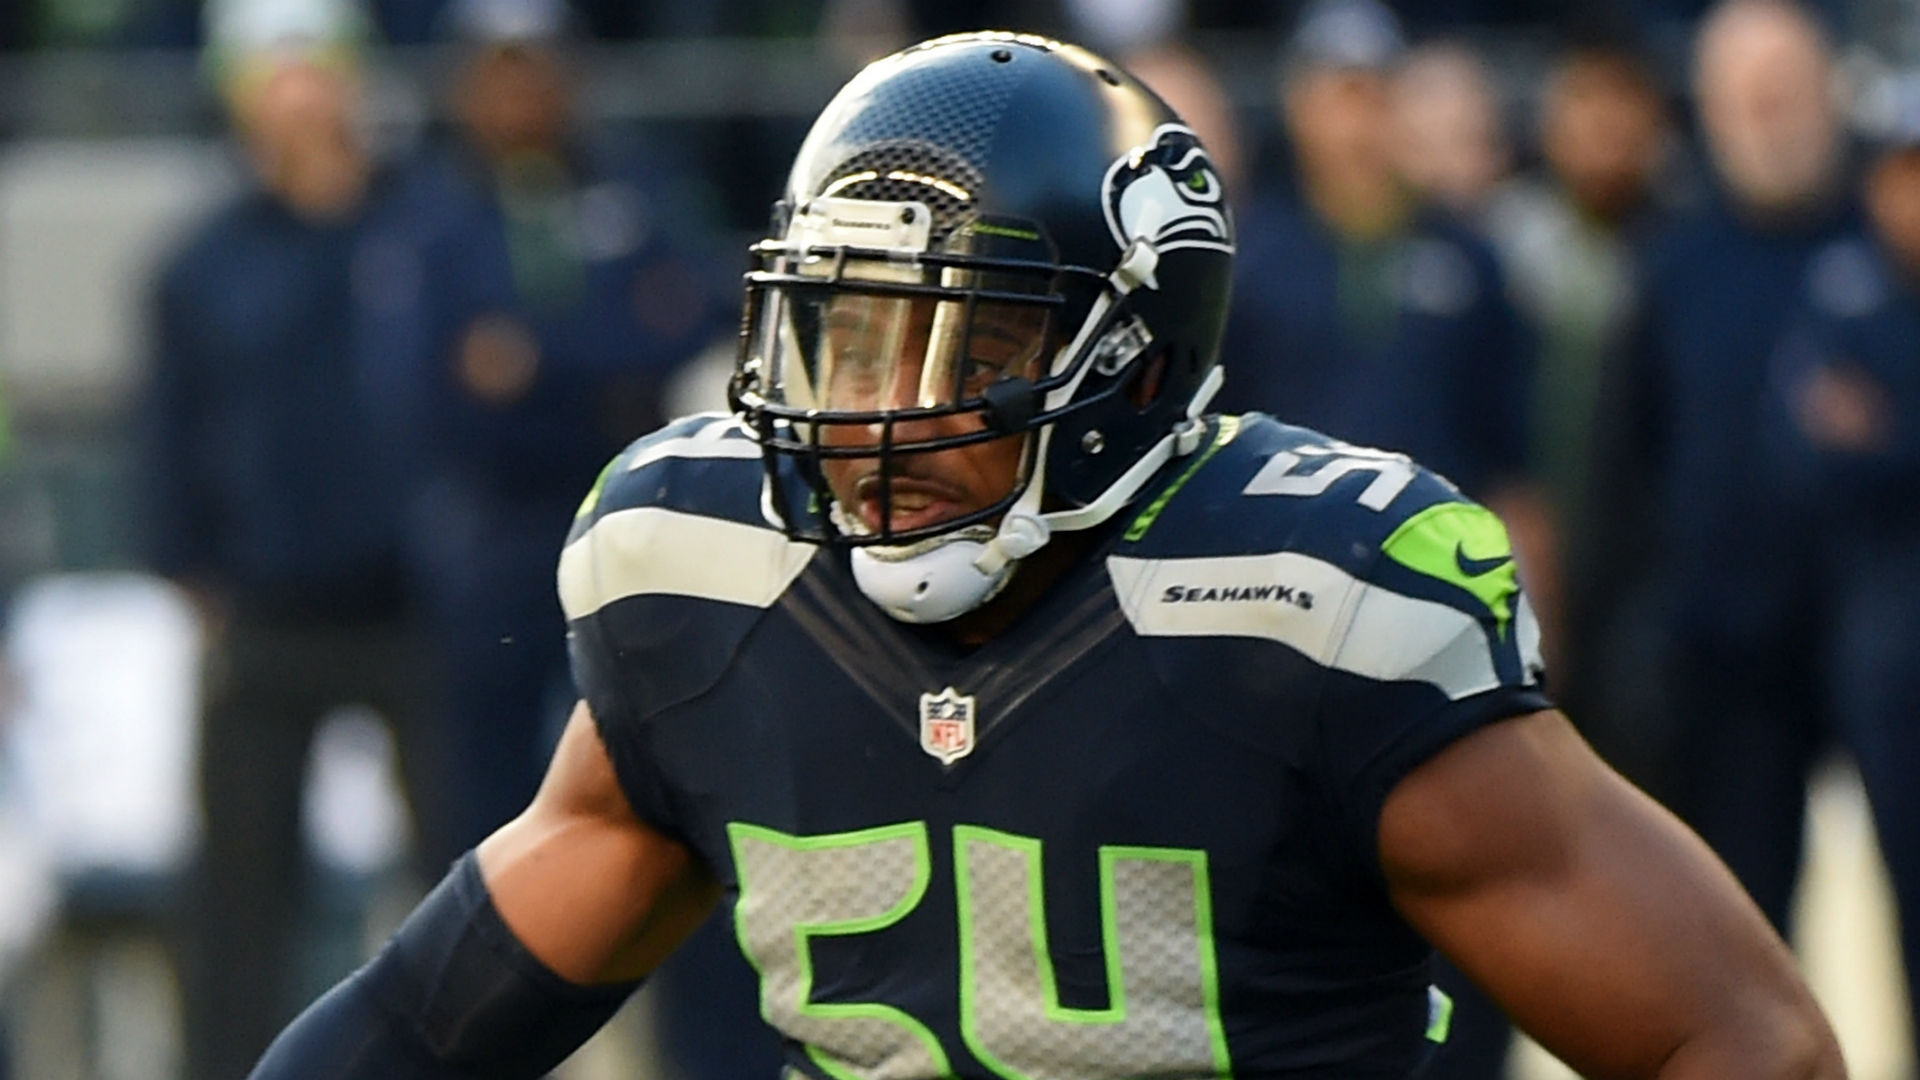 Seahawks' Bobby Wagner is looking for his new money, too